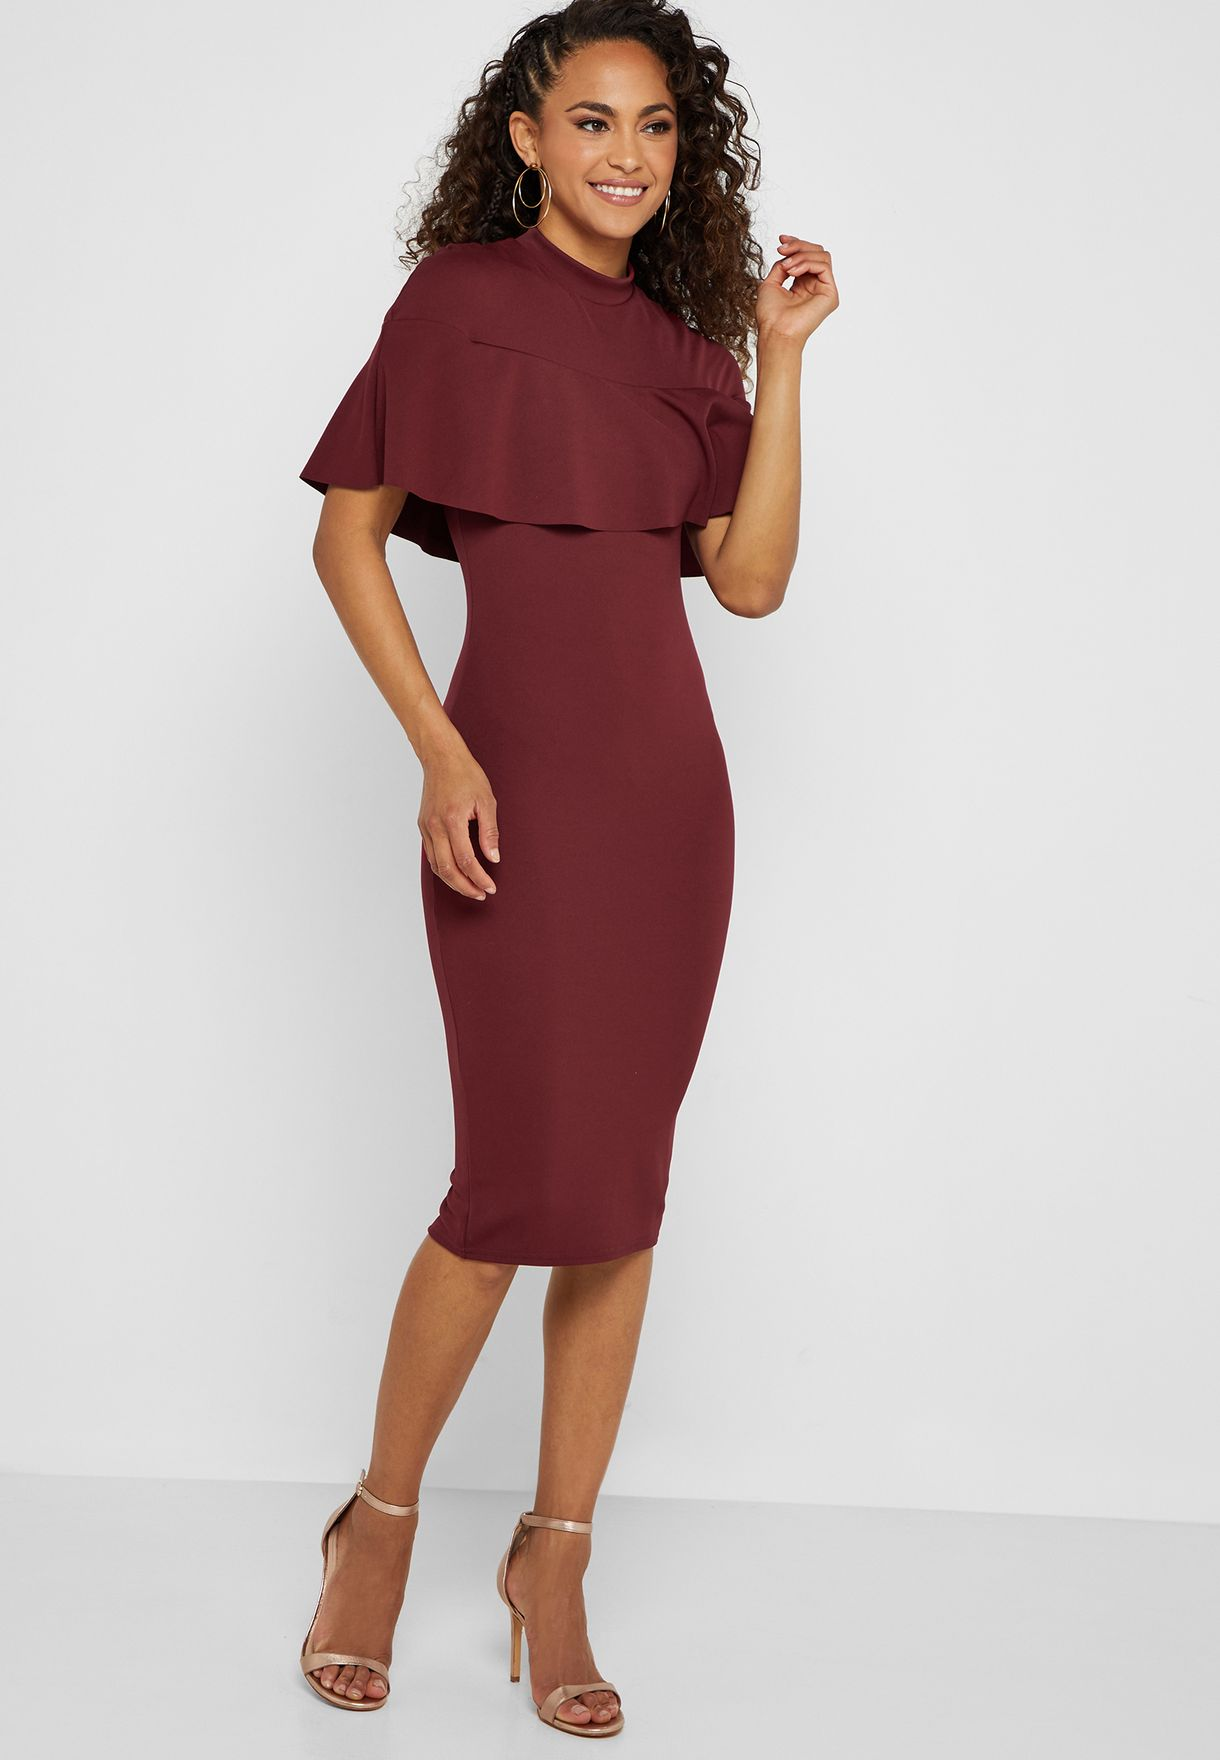 7bdc8617f9 Shop Missguided red High Neck Overlay Bodycon Dress DE925263 for ...